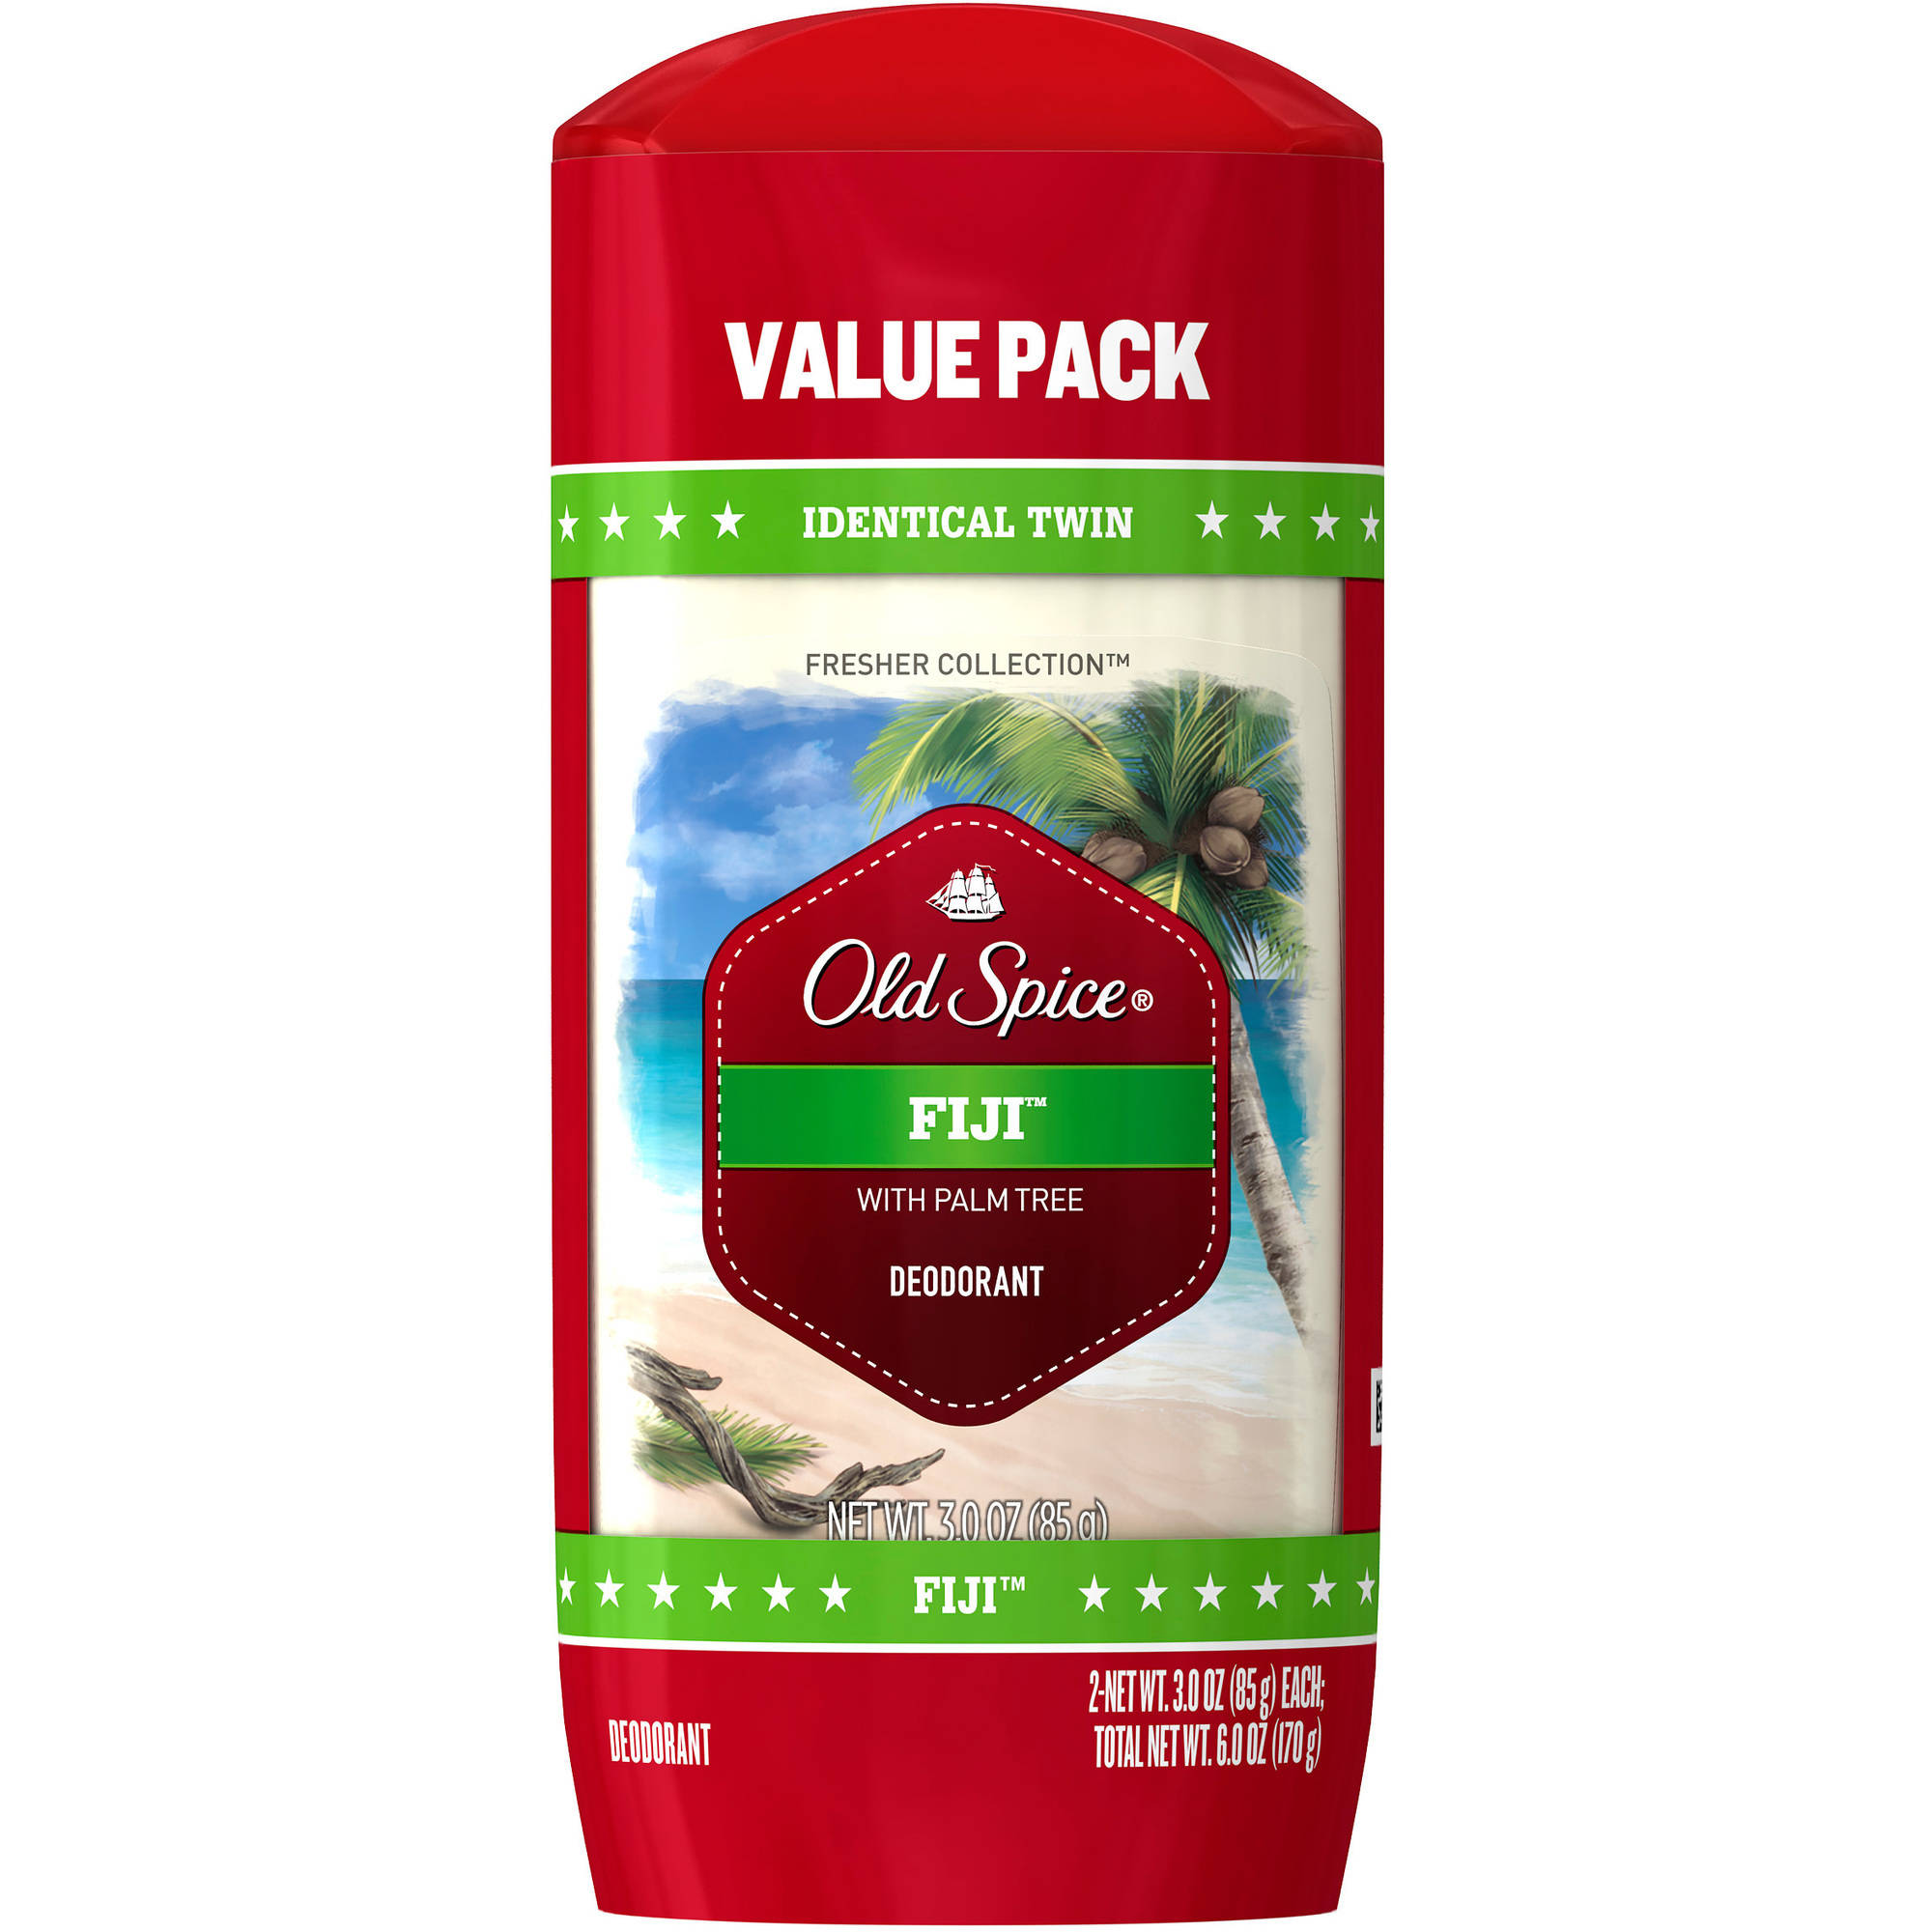 Old Spice Fresh Collection Fiji Deodorant, 2pk